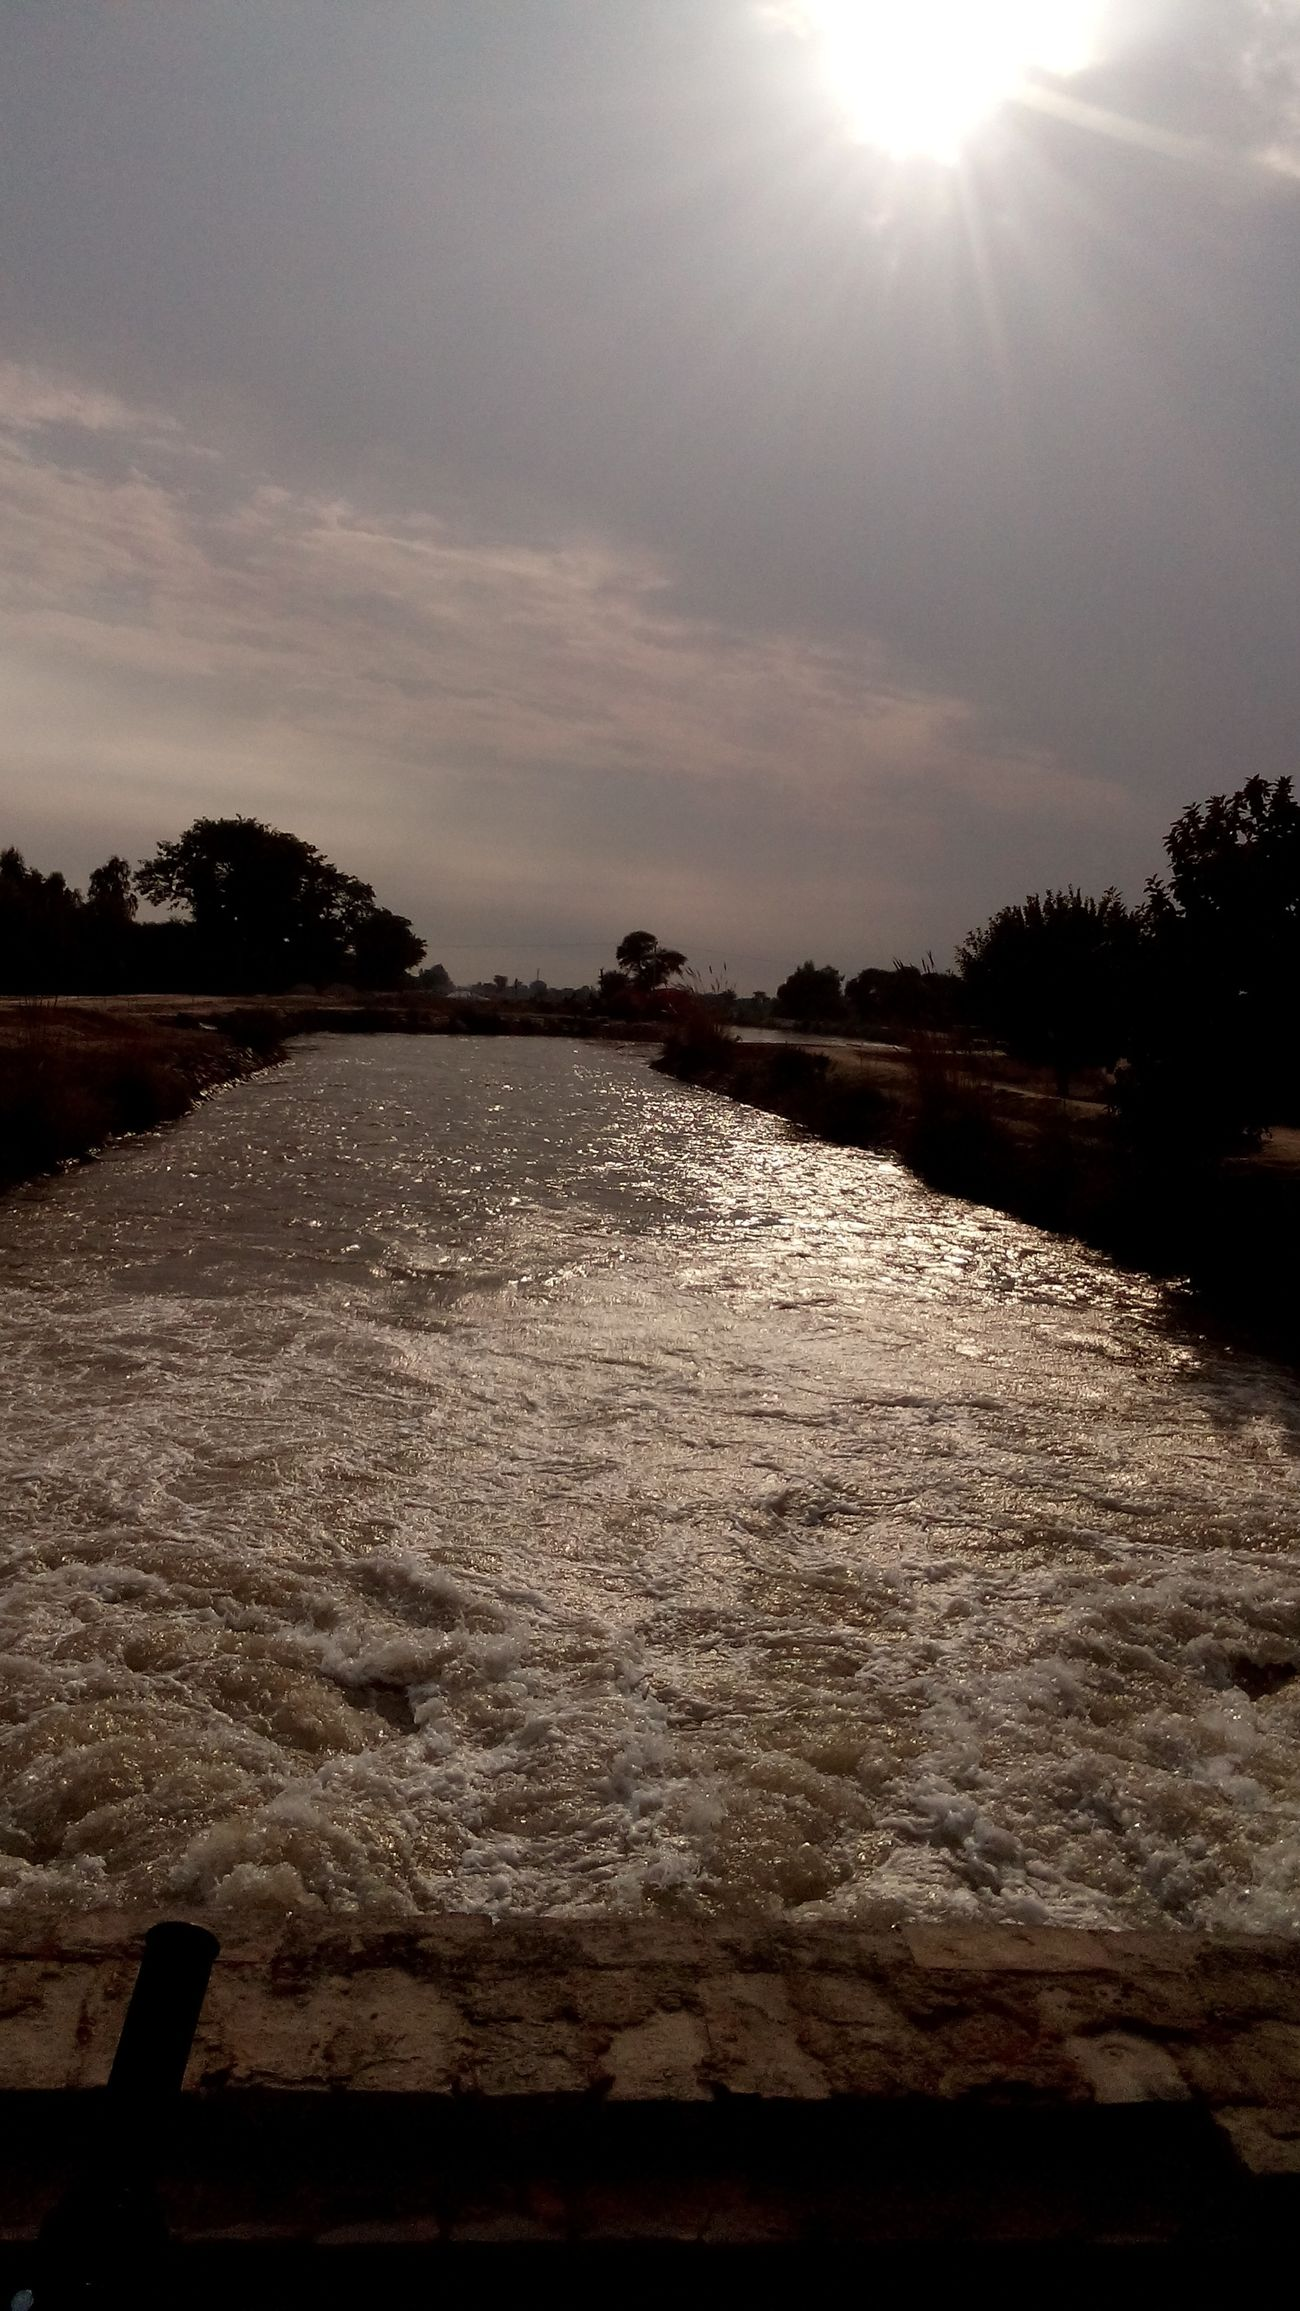 Taking Photos Nawanlahore Landscape_Collection Eyeem Pakistan InPakistan Withouteffect Sunlight Urban 4 Filter Canal